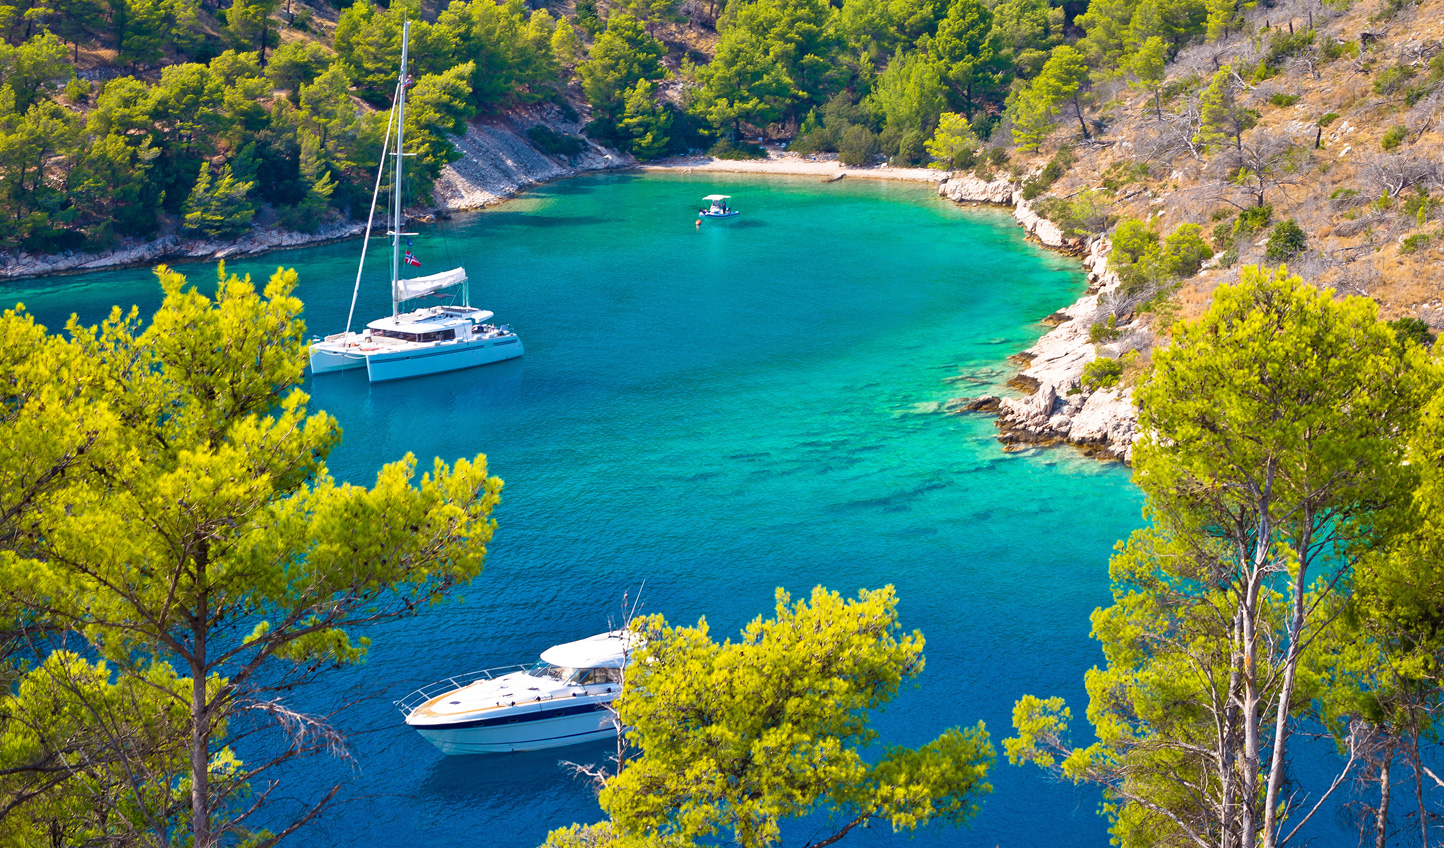 Discover hidden coves, perfect for a swim away from the crowds